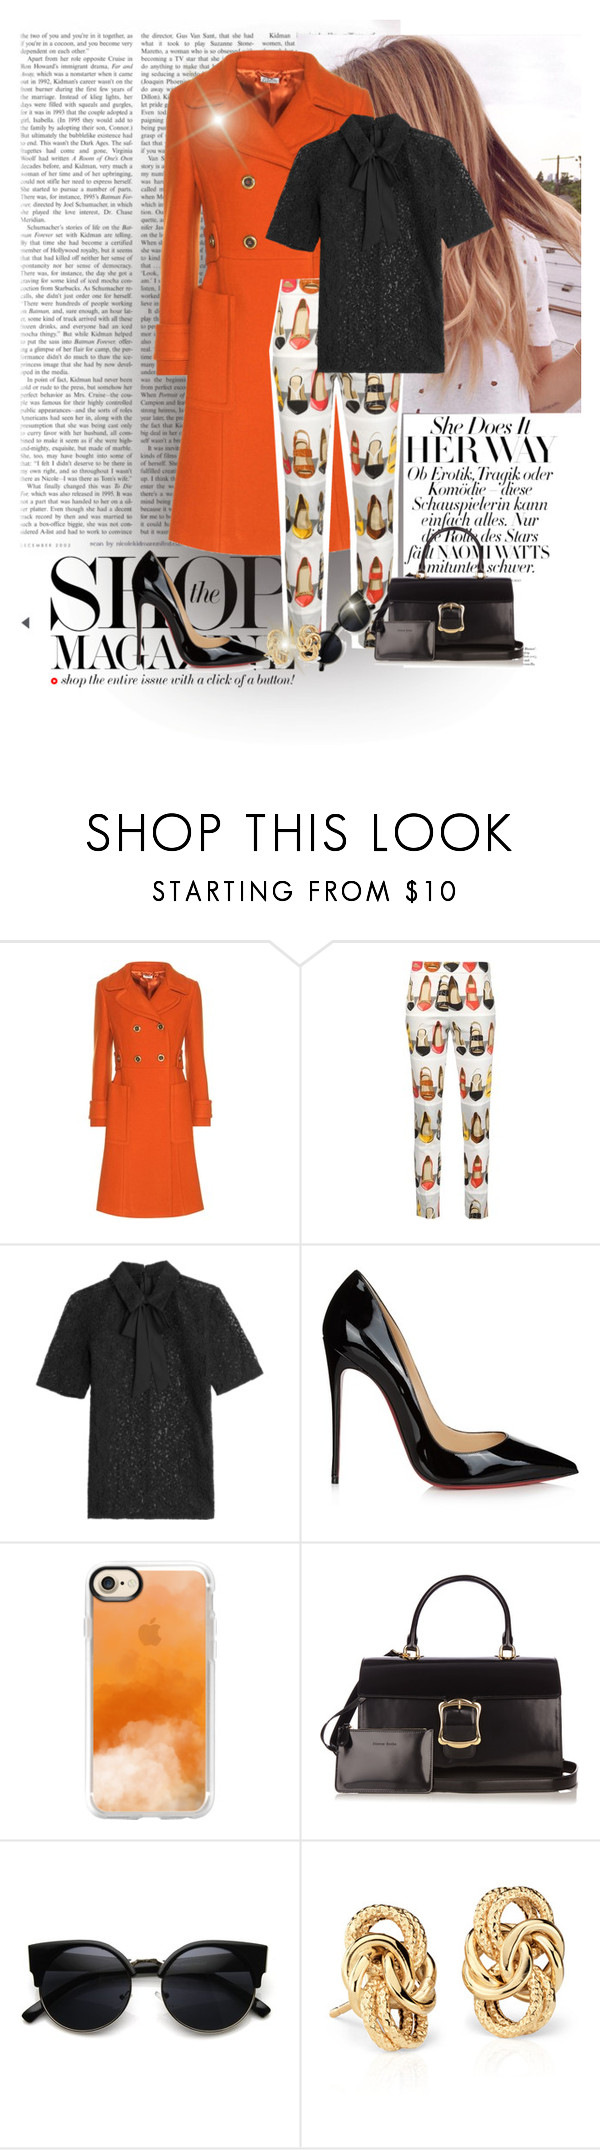 """""""Untitled #2493"""" by swc0509 ❤ liked on Polyvore featuring Miu Miu, Moschino, The Kooples, Christian Louboutin, Casetify, Simone Rocha and Blue Nile"""